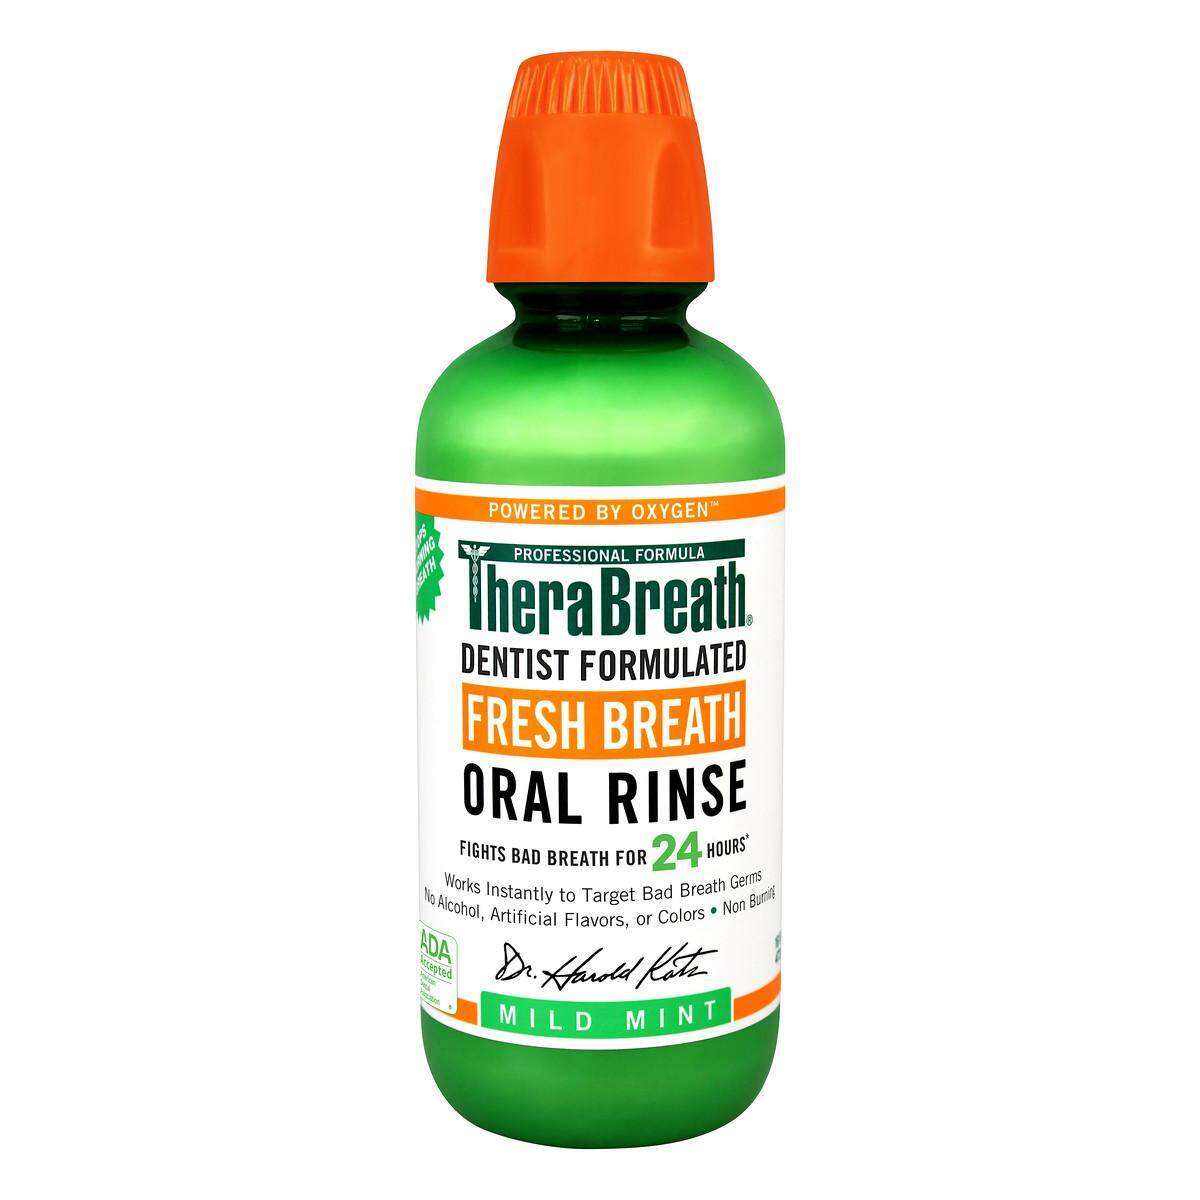 16 Ounce Therabreath Dentist Recommended Fresh Breath Oral Rinse - Mild Mint Flavor By Yjcventures.